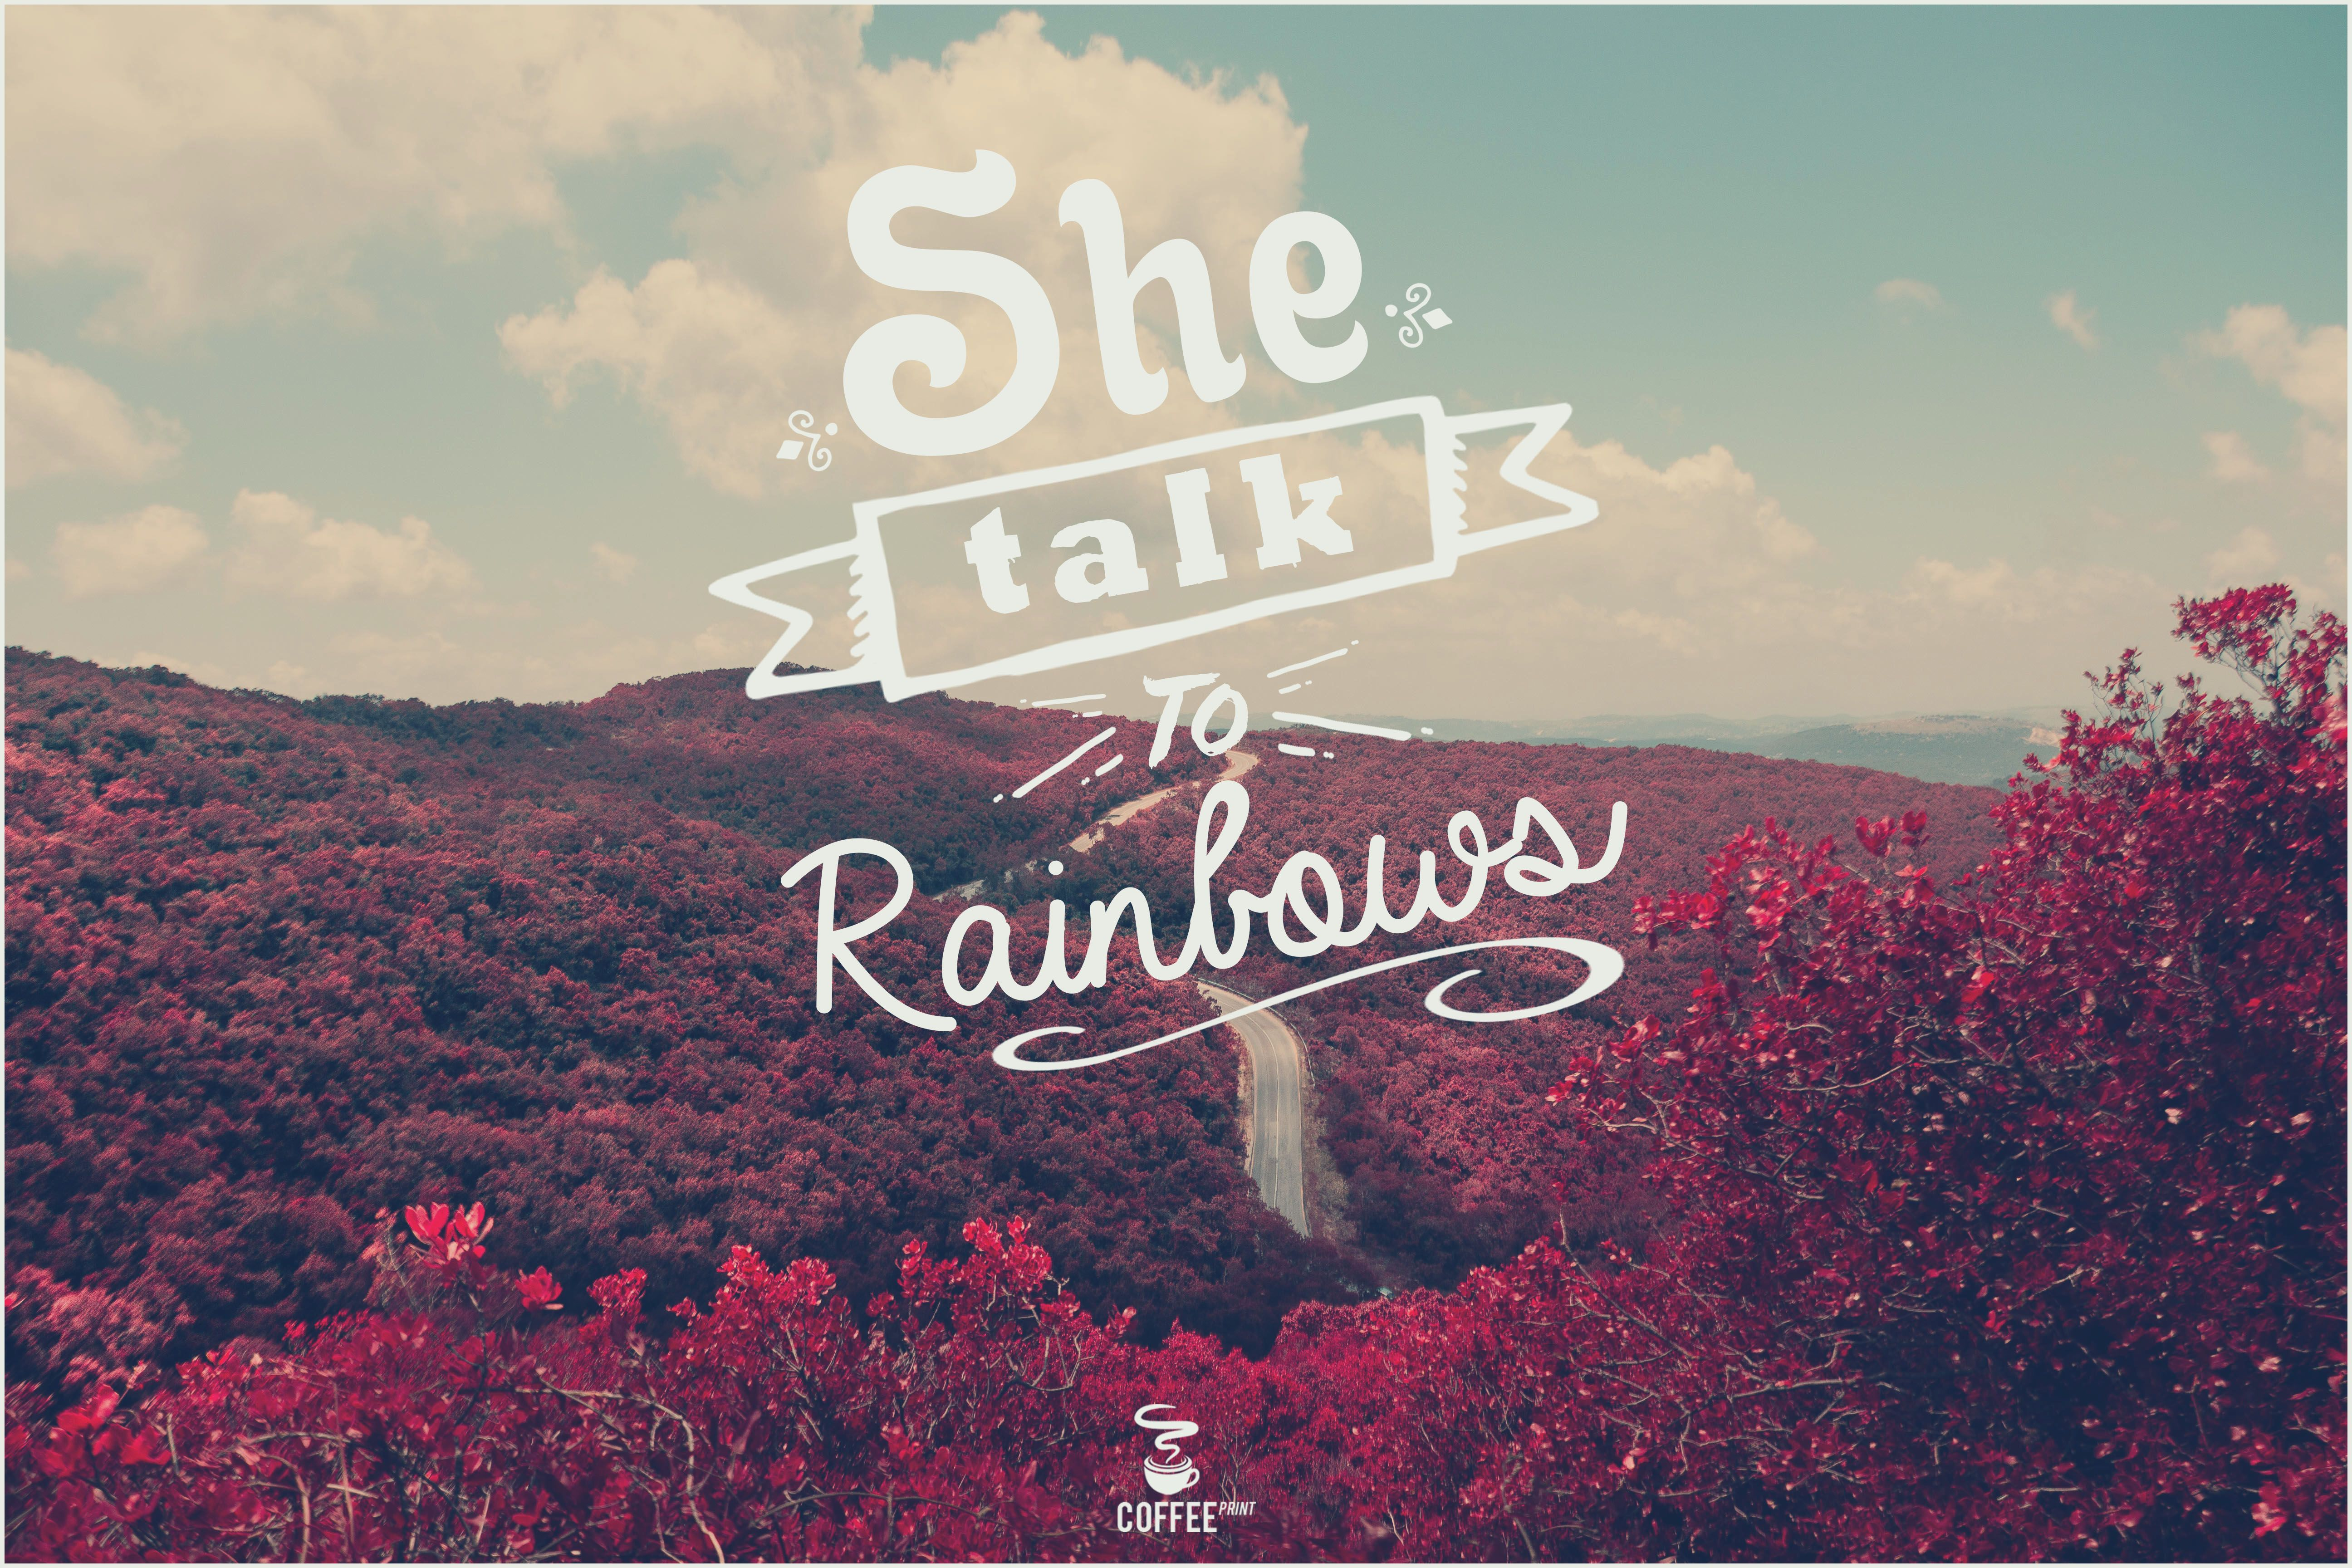 She talk to rainbows - Ramones. Frases Rock. Frases Coffee Print